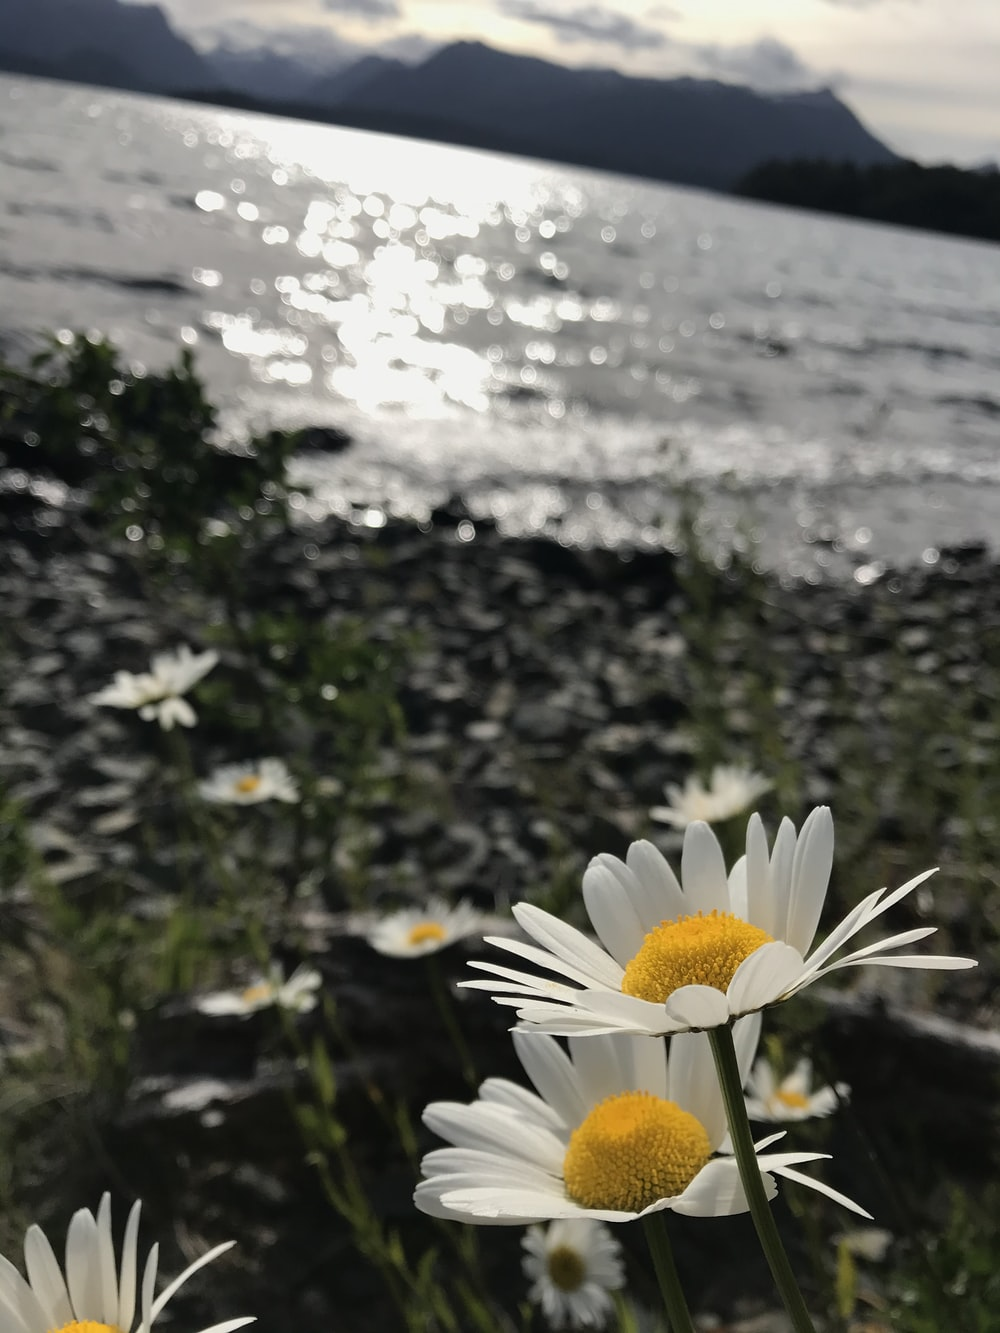 white daisy flower near body of water during daytime